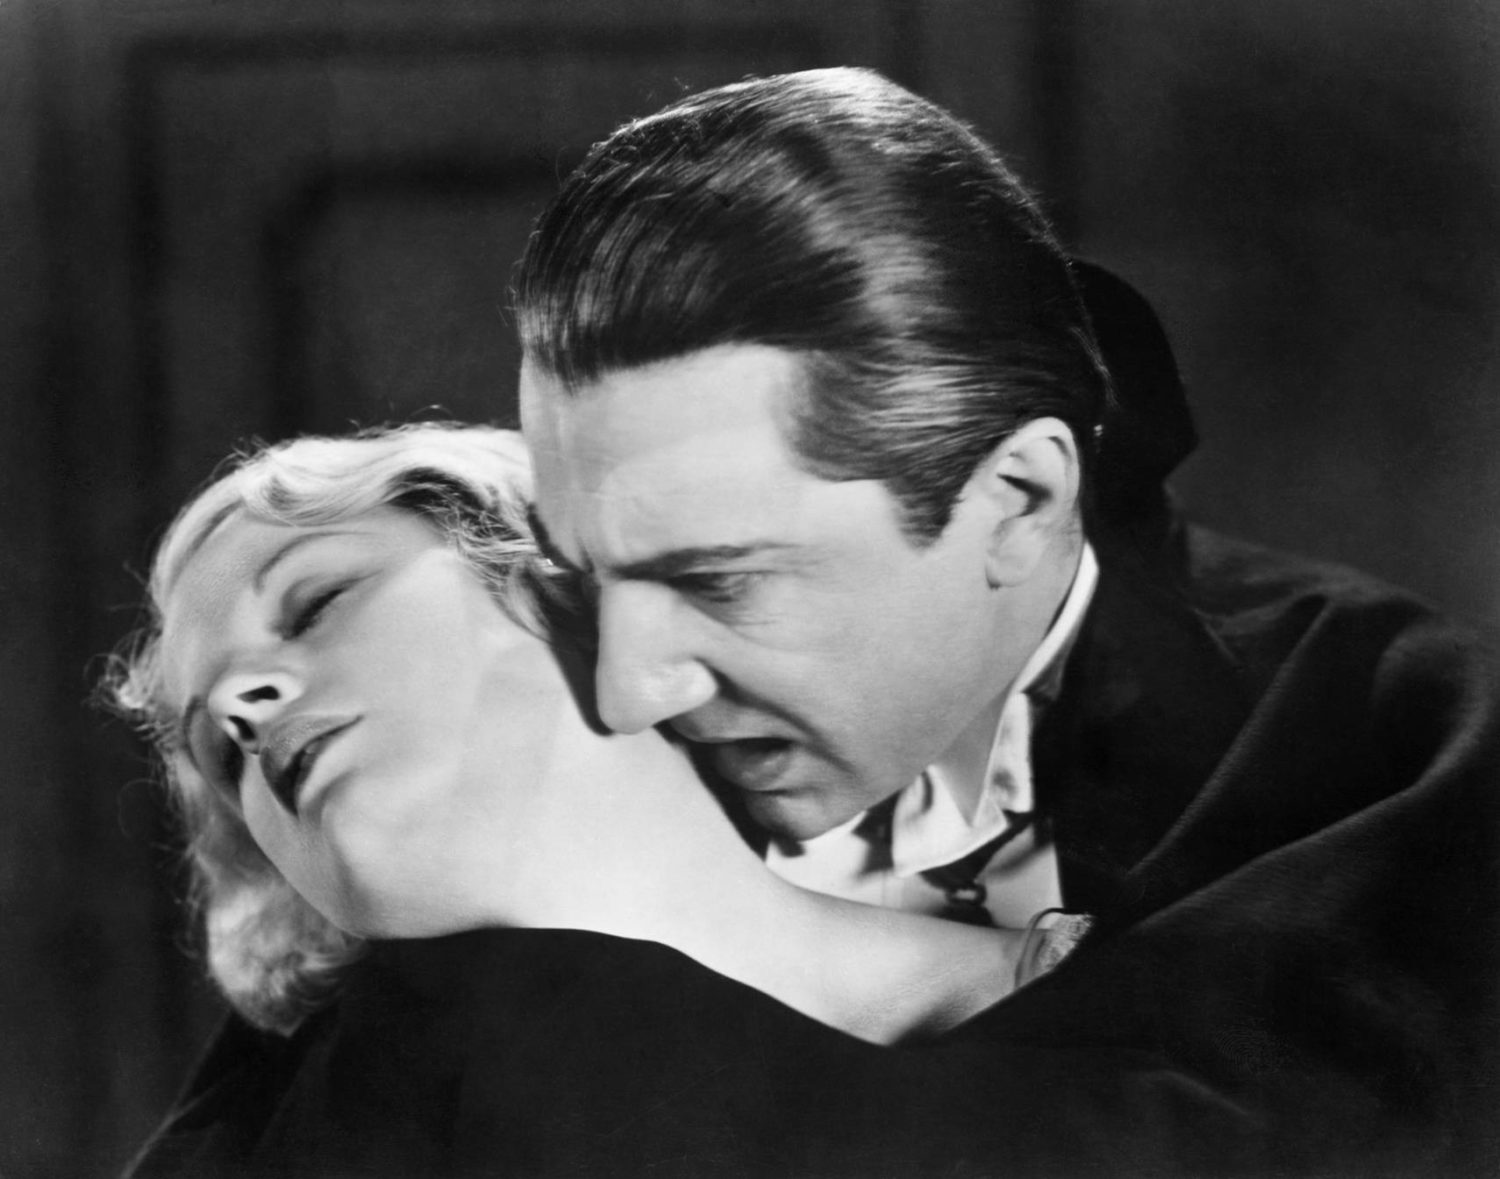 Bela Lugosi sinks his teeth into Helen Chandler's neck in Dracula (1931)